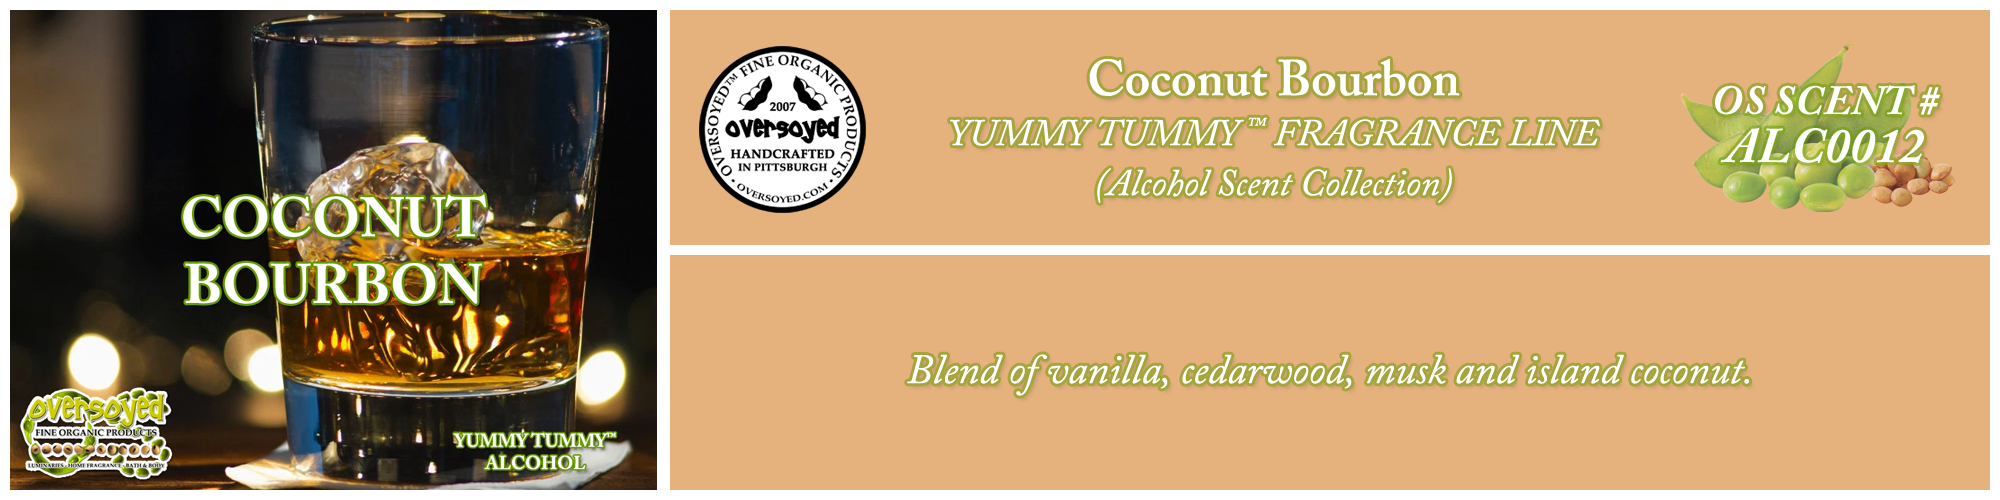 Coconut Bourbon Handcrafted Products Collection